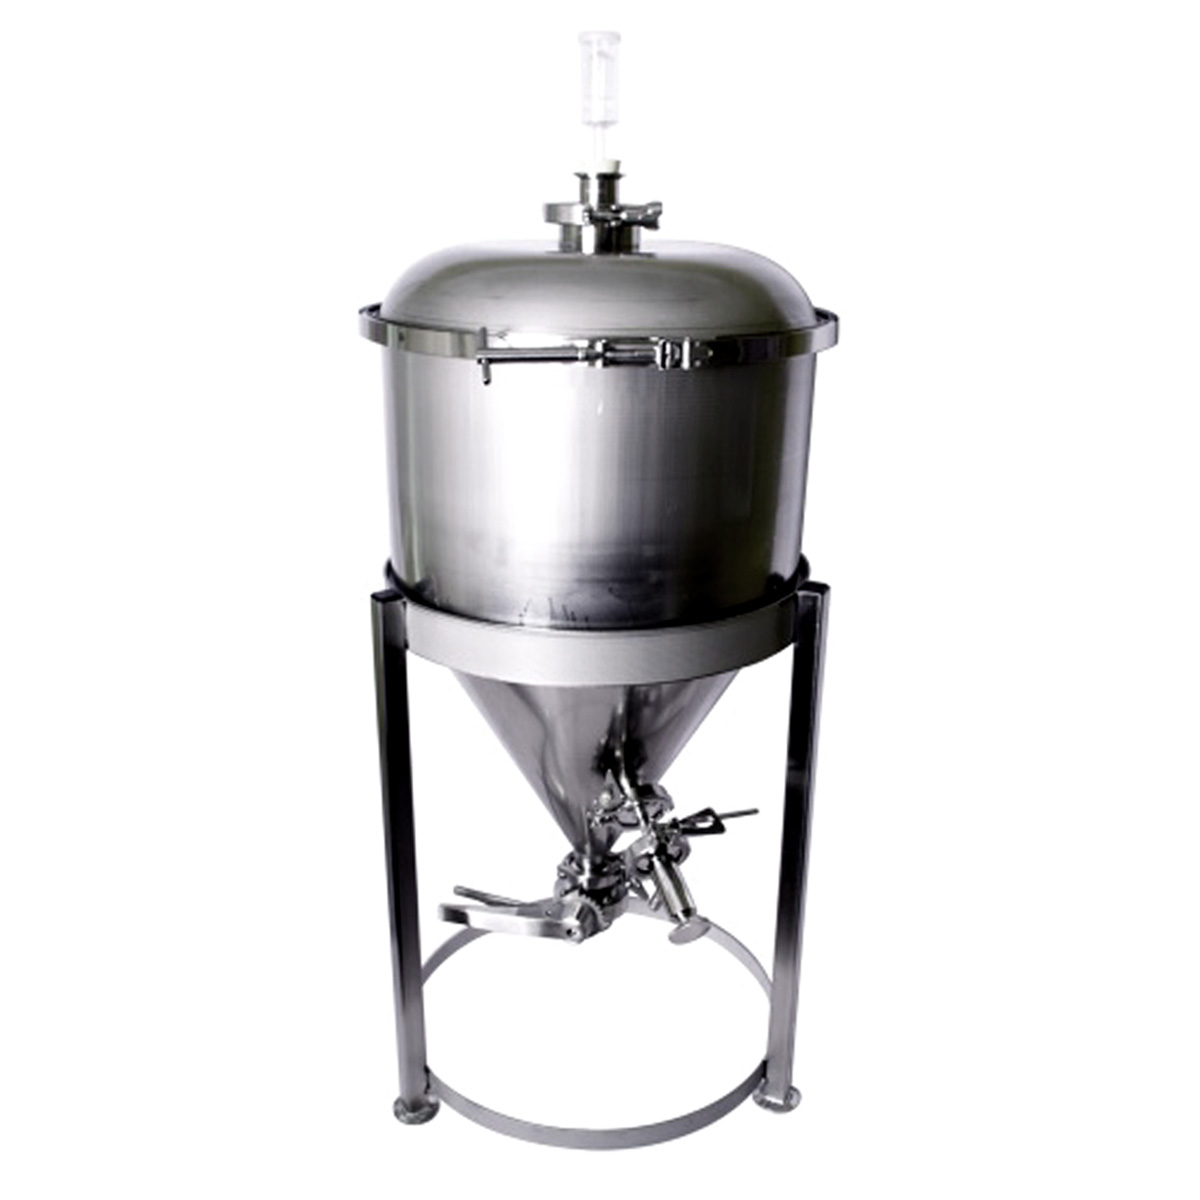 MoreBeer Deluxe 27 Gallon Stainless Conical Fermenter Coupon Code